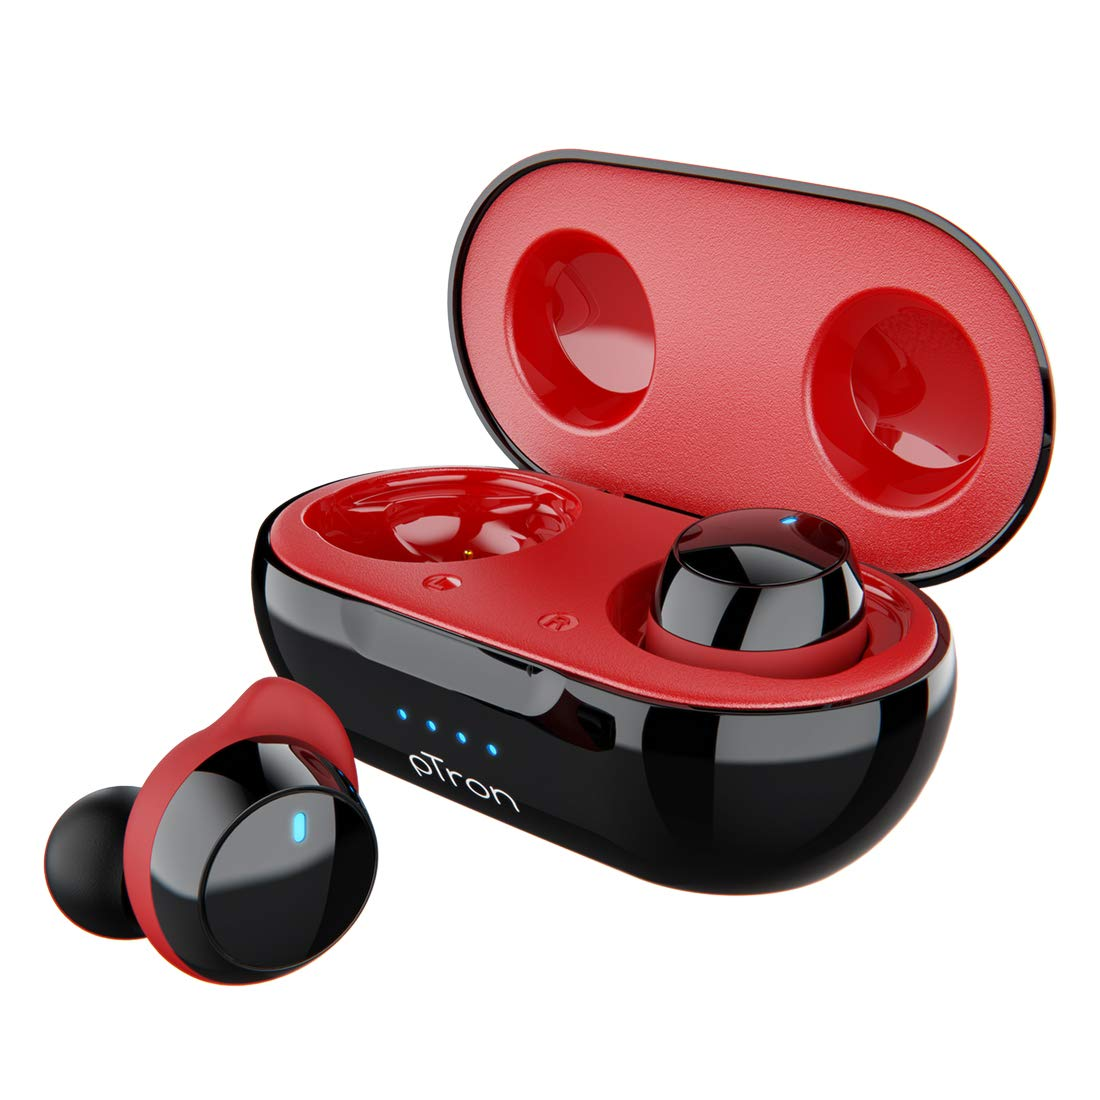 Ptron Bassbuds Elite Wireless Earbuds Launched in India